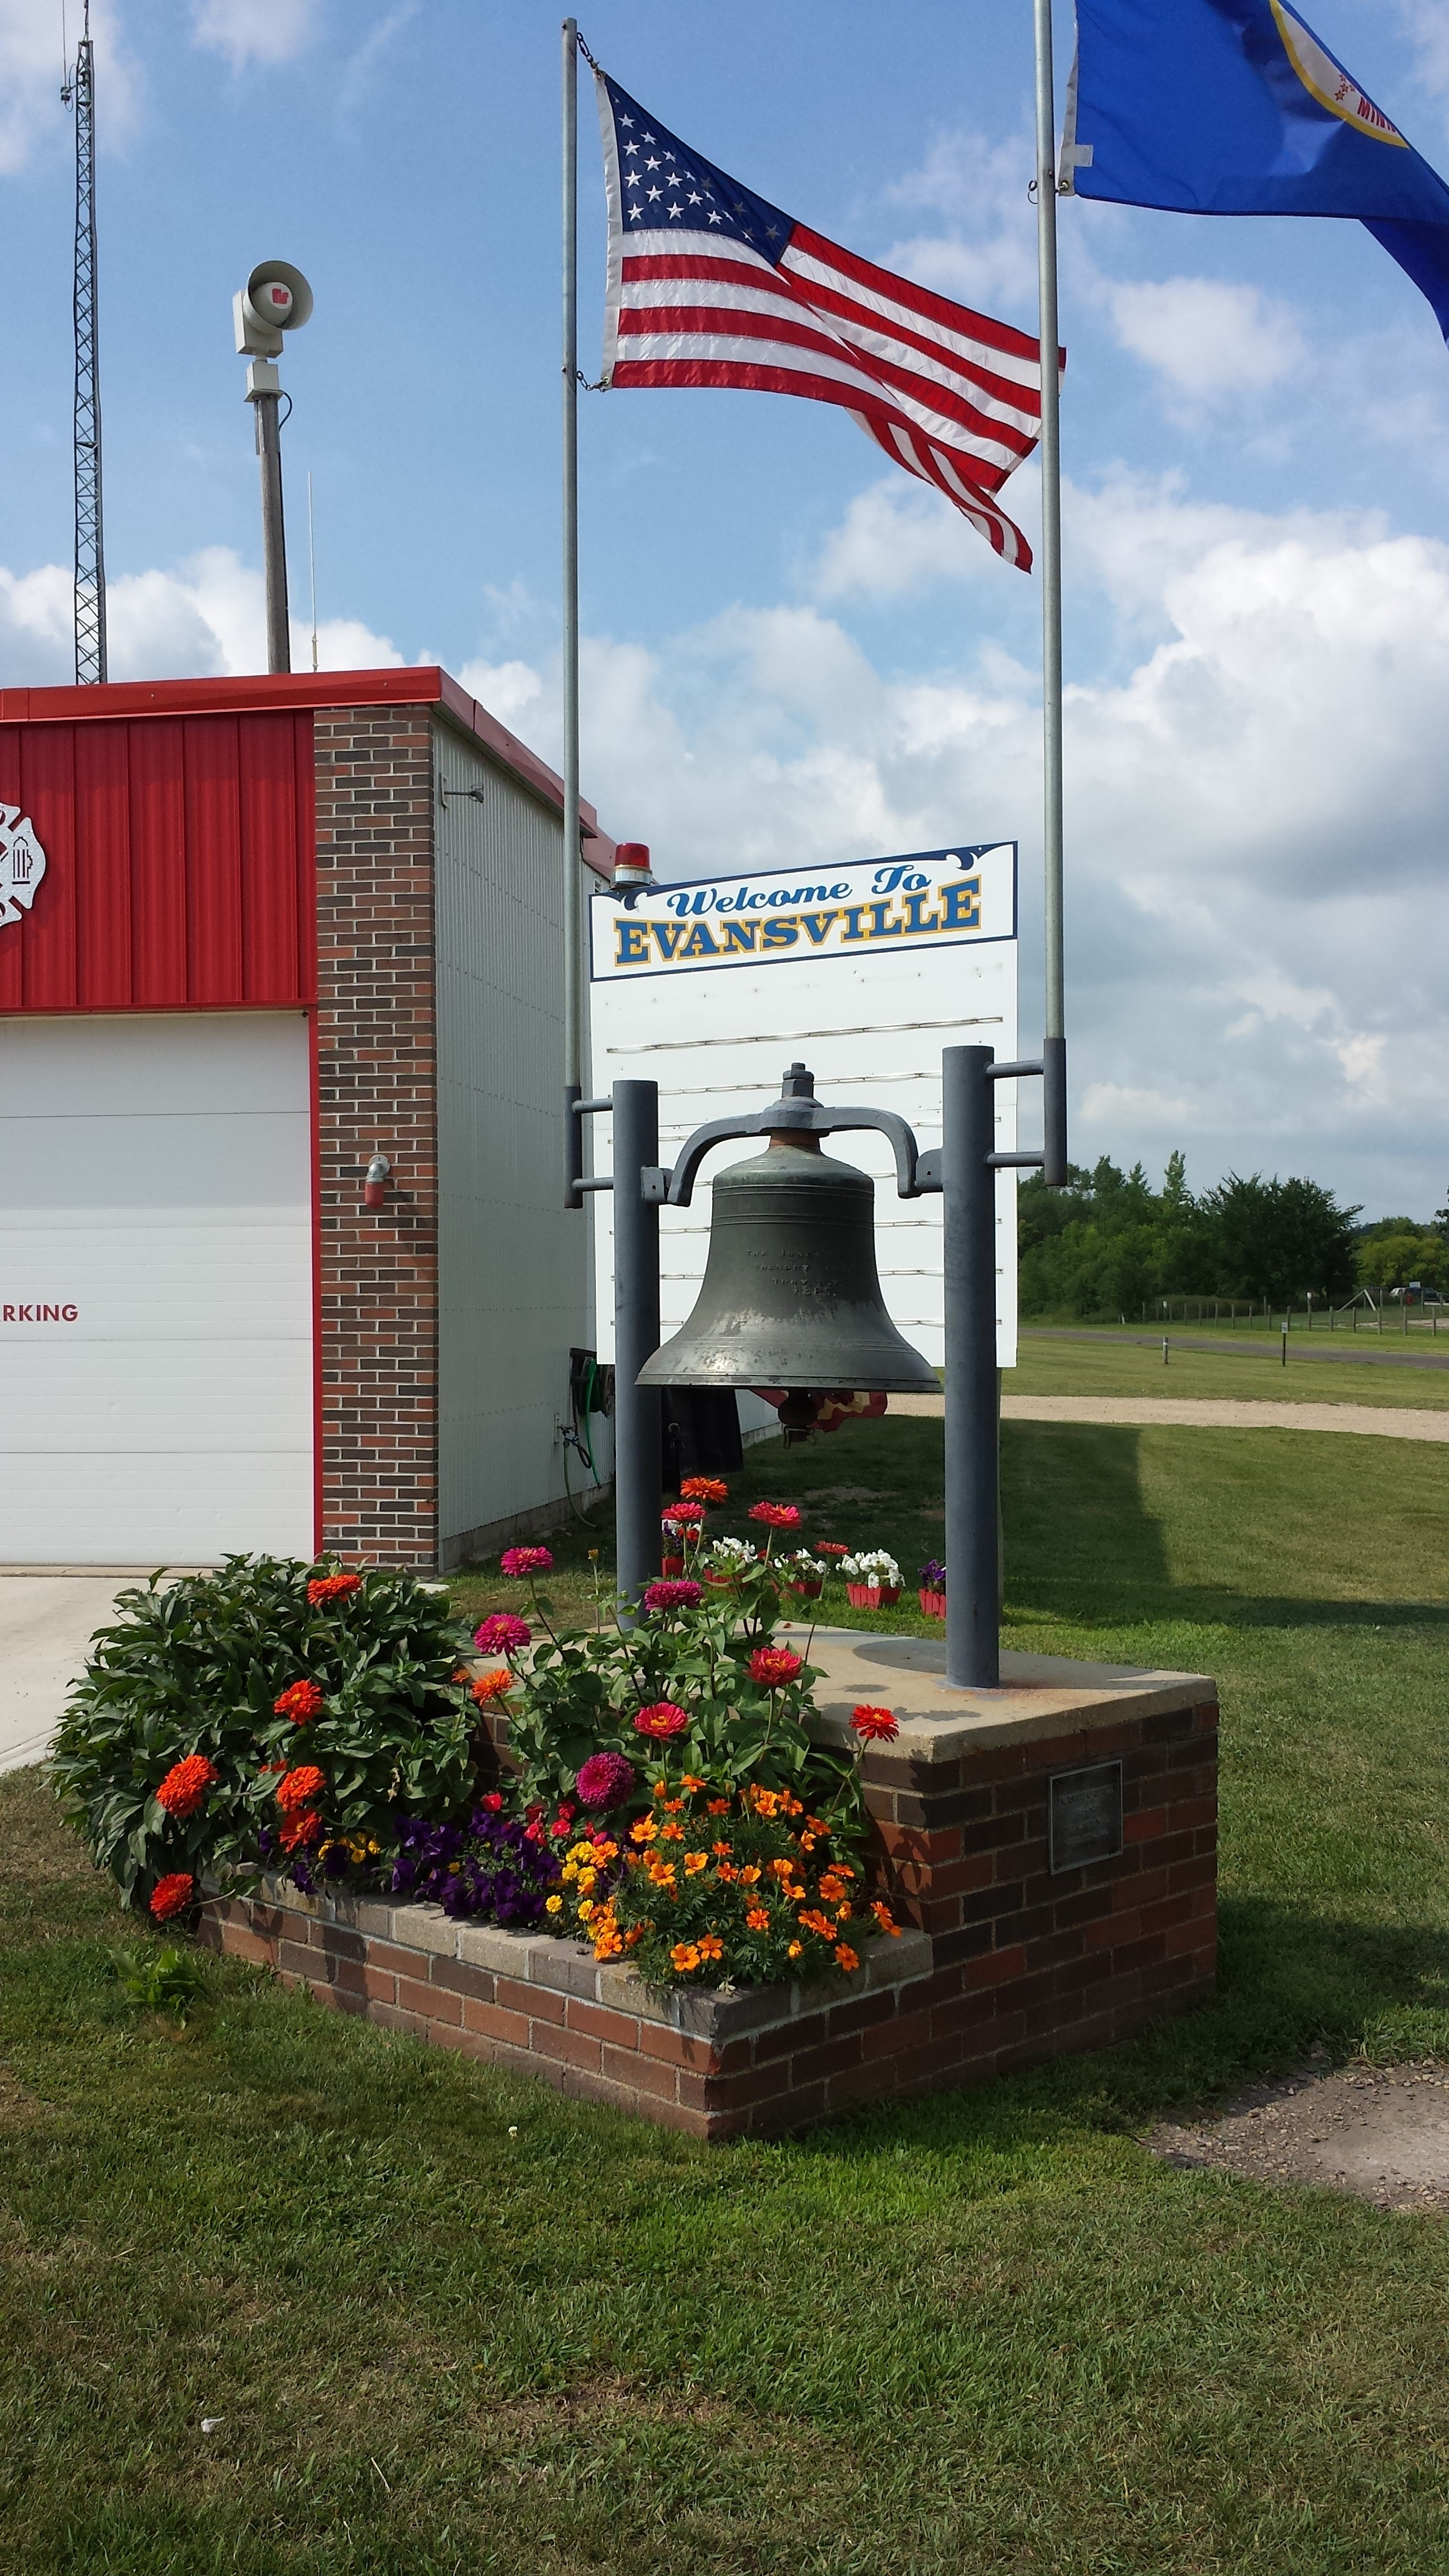 Flowers complete a new planter in front of the community billboard in Evansville.